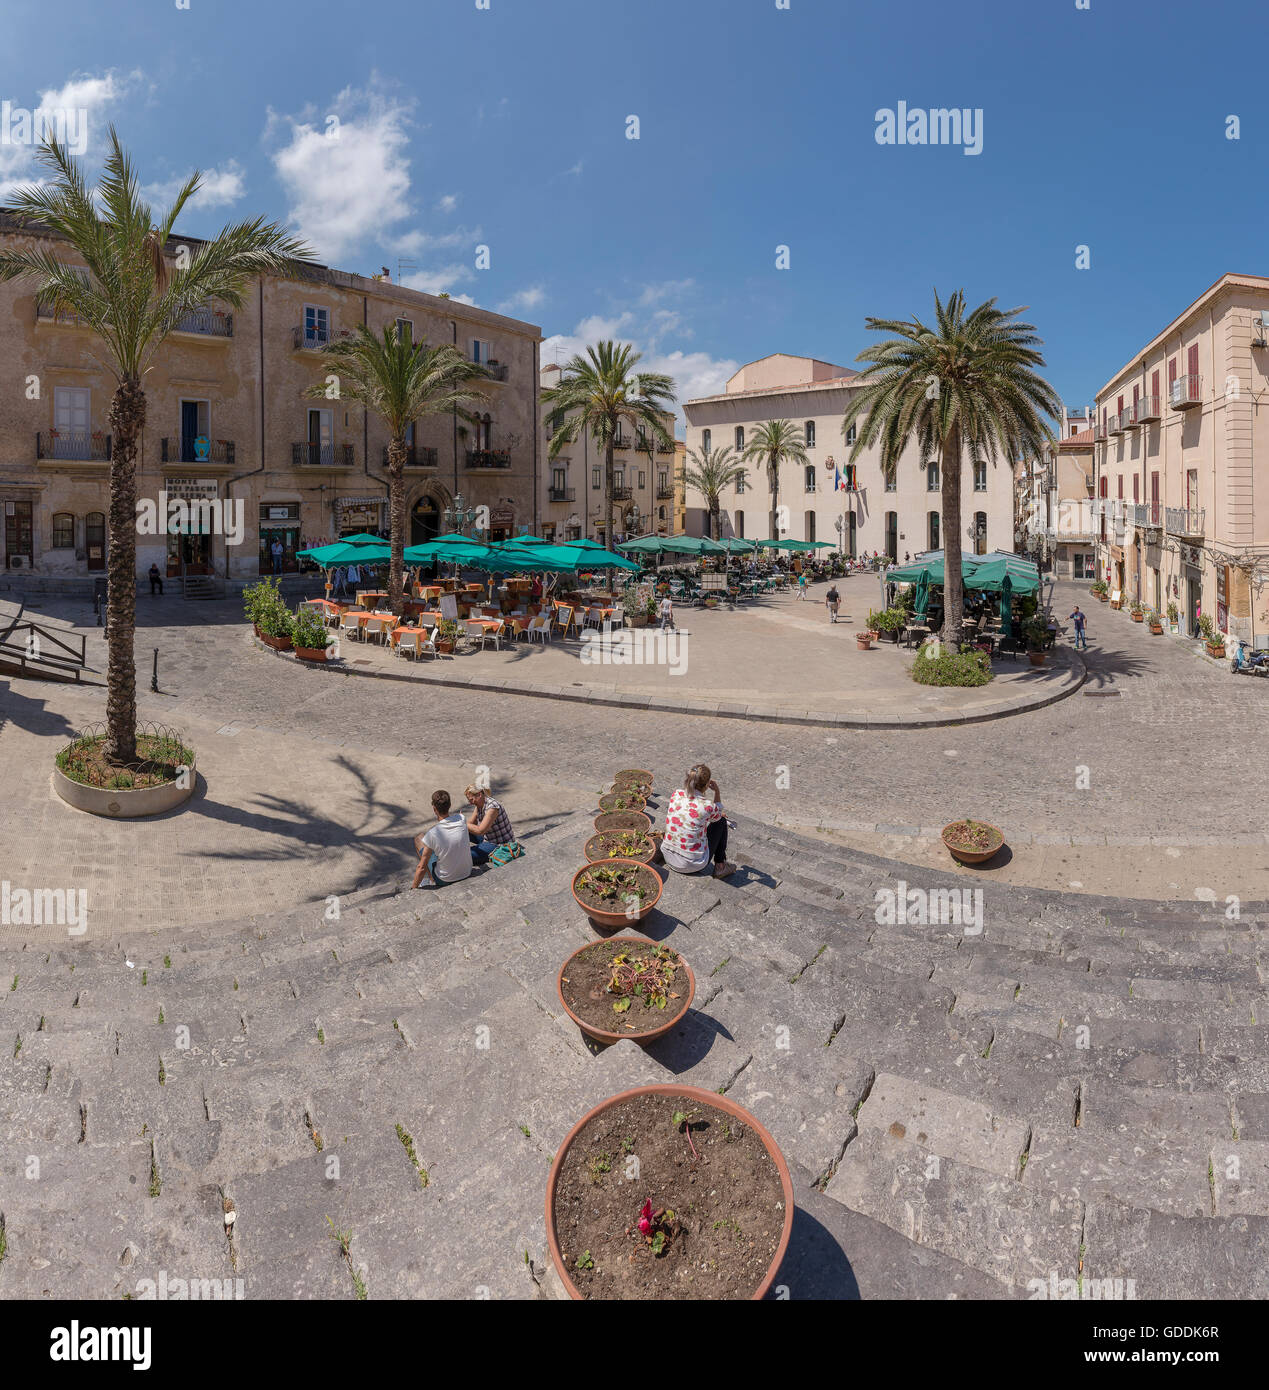 Square with outdoor cafes,sunshades and palm trees - Stock Image